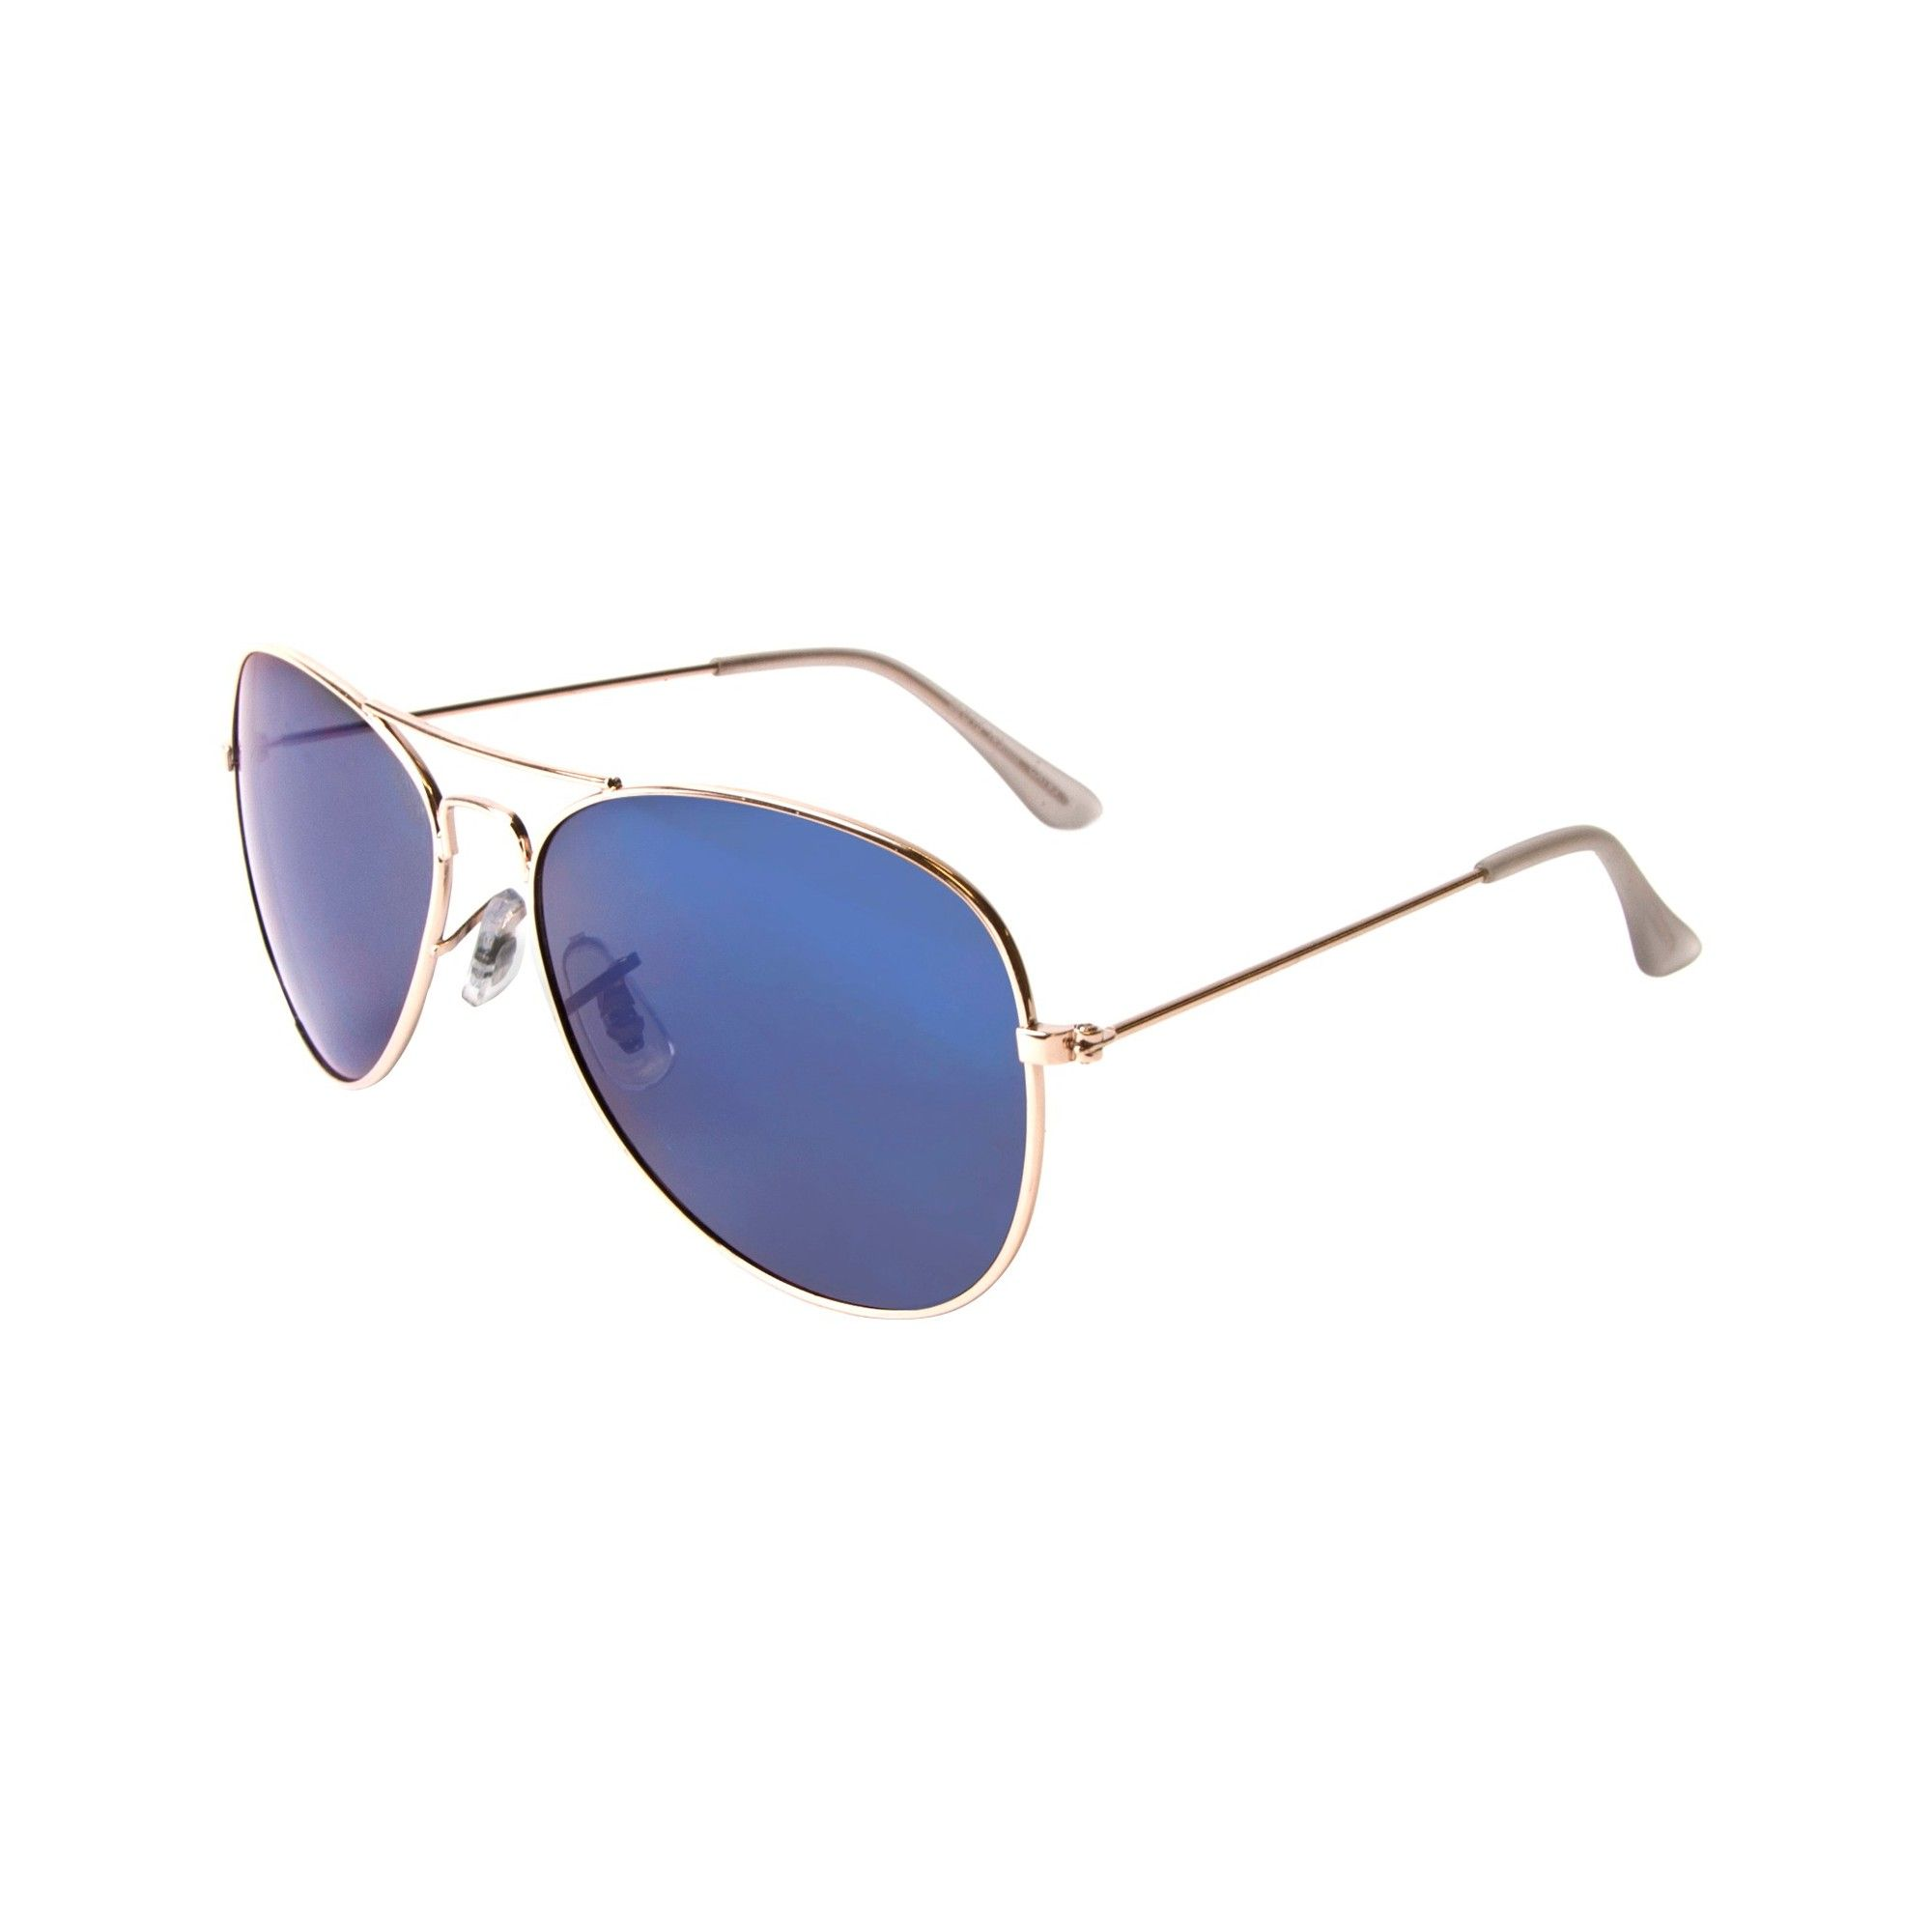 Aviator Sunglasses With Blue Mirror Lens - Shabooms